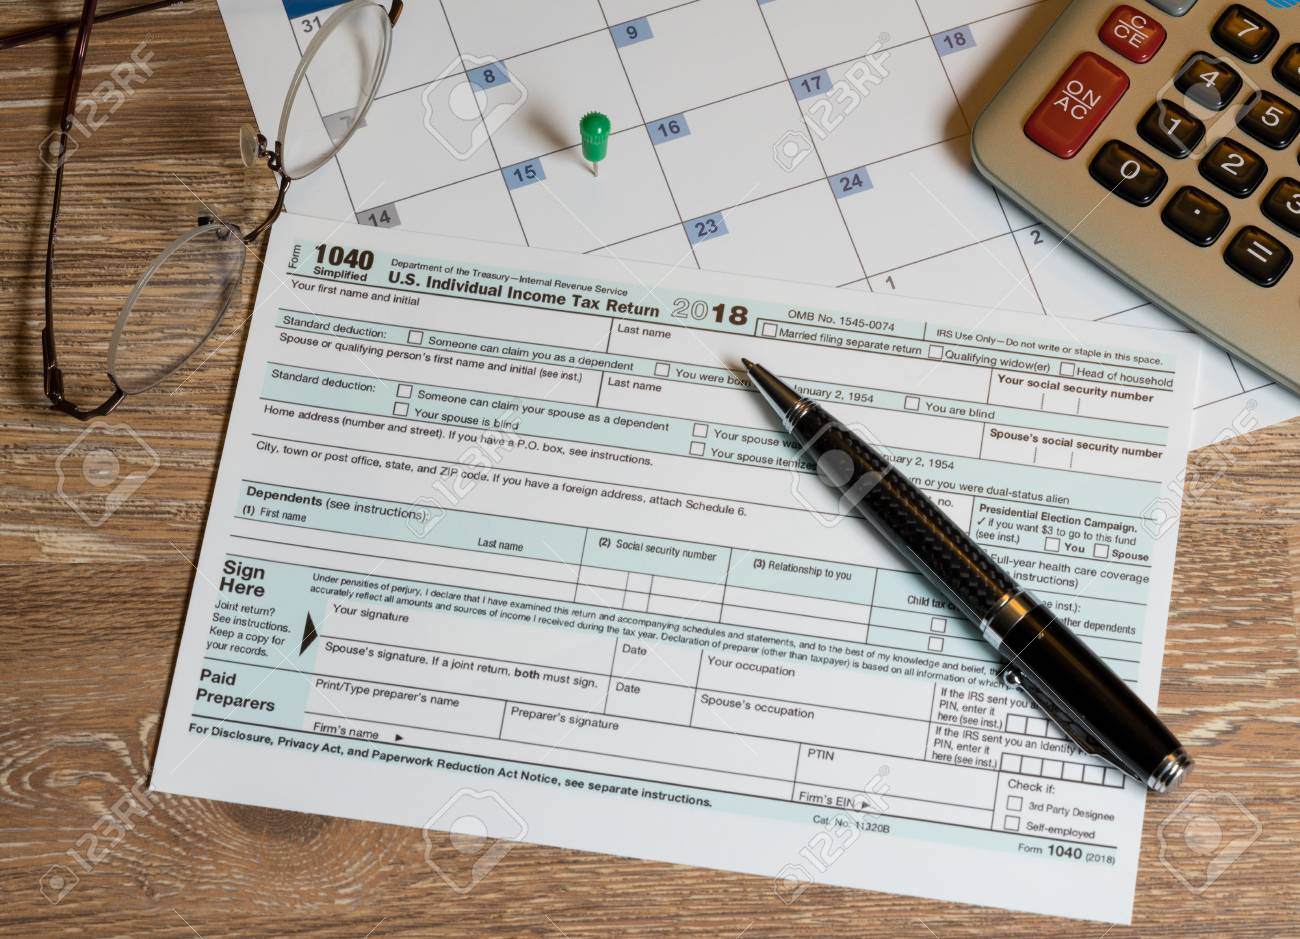 New Form 1040 Simplified for 2018 allows for filing on April